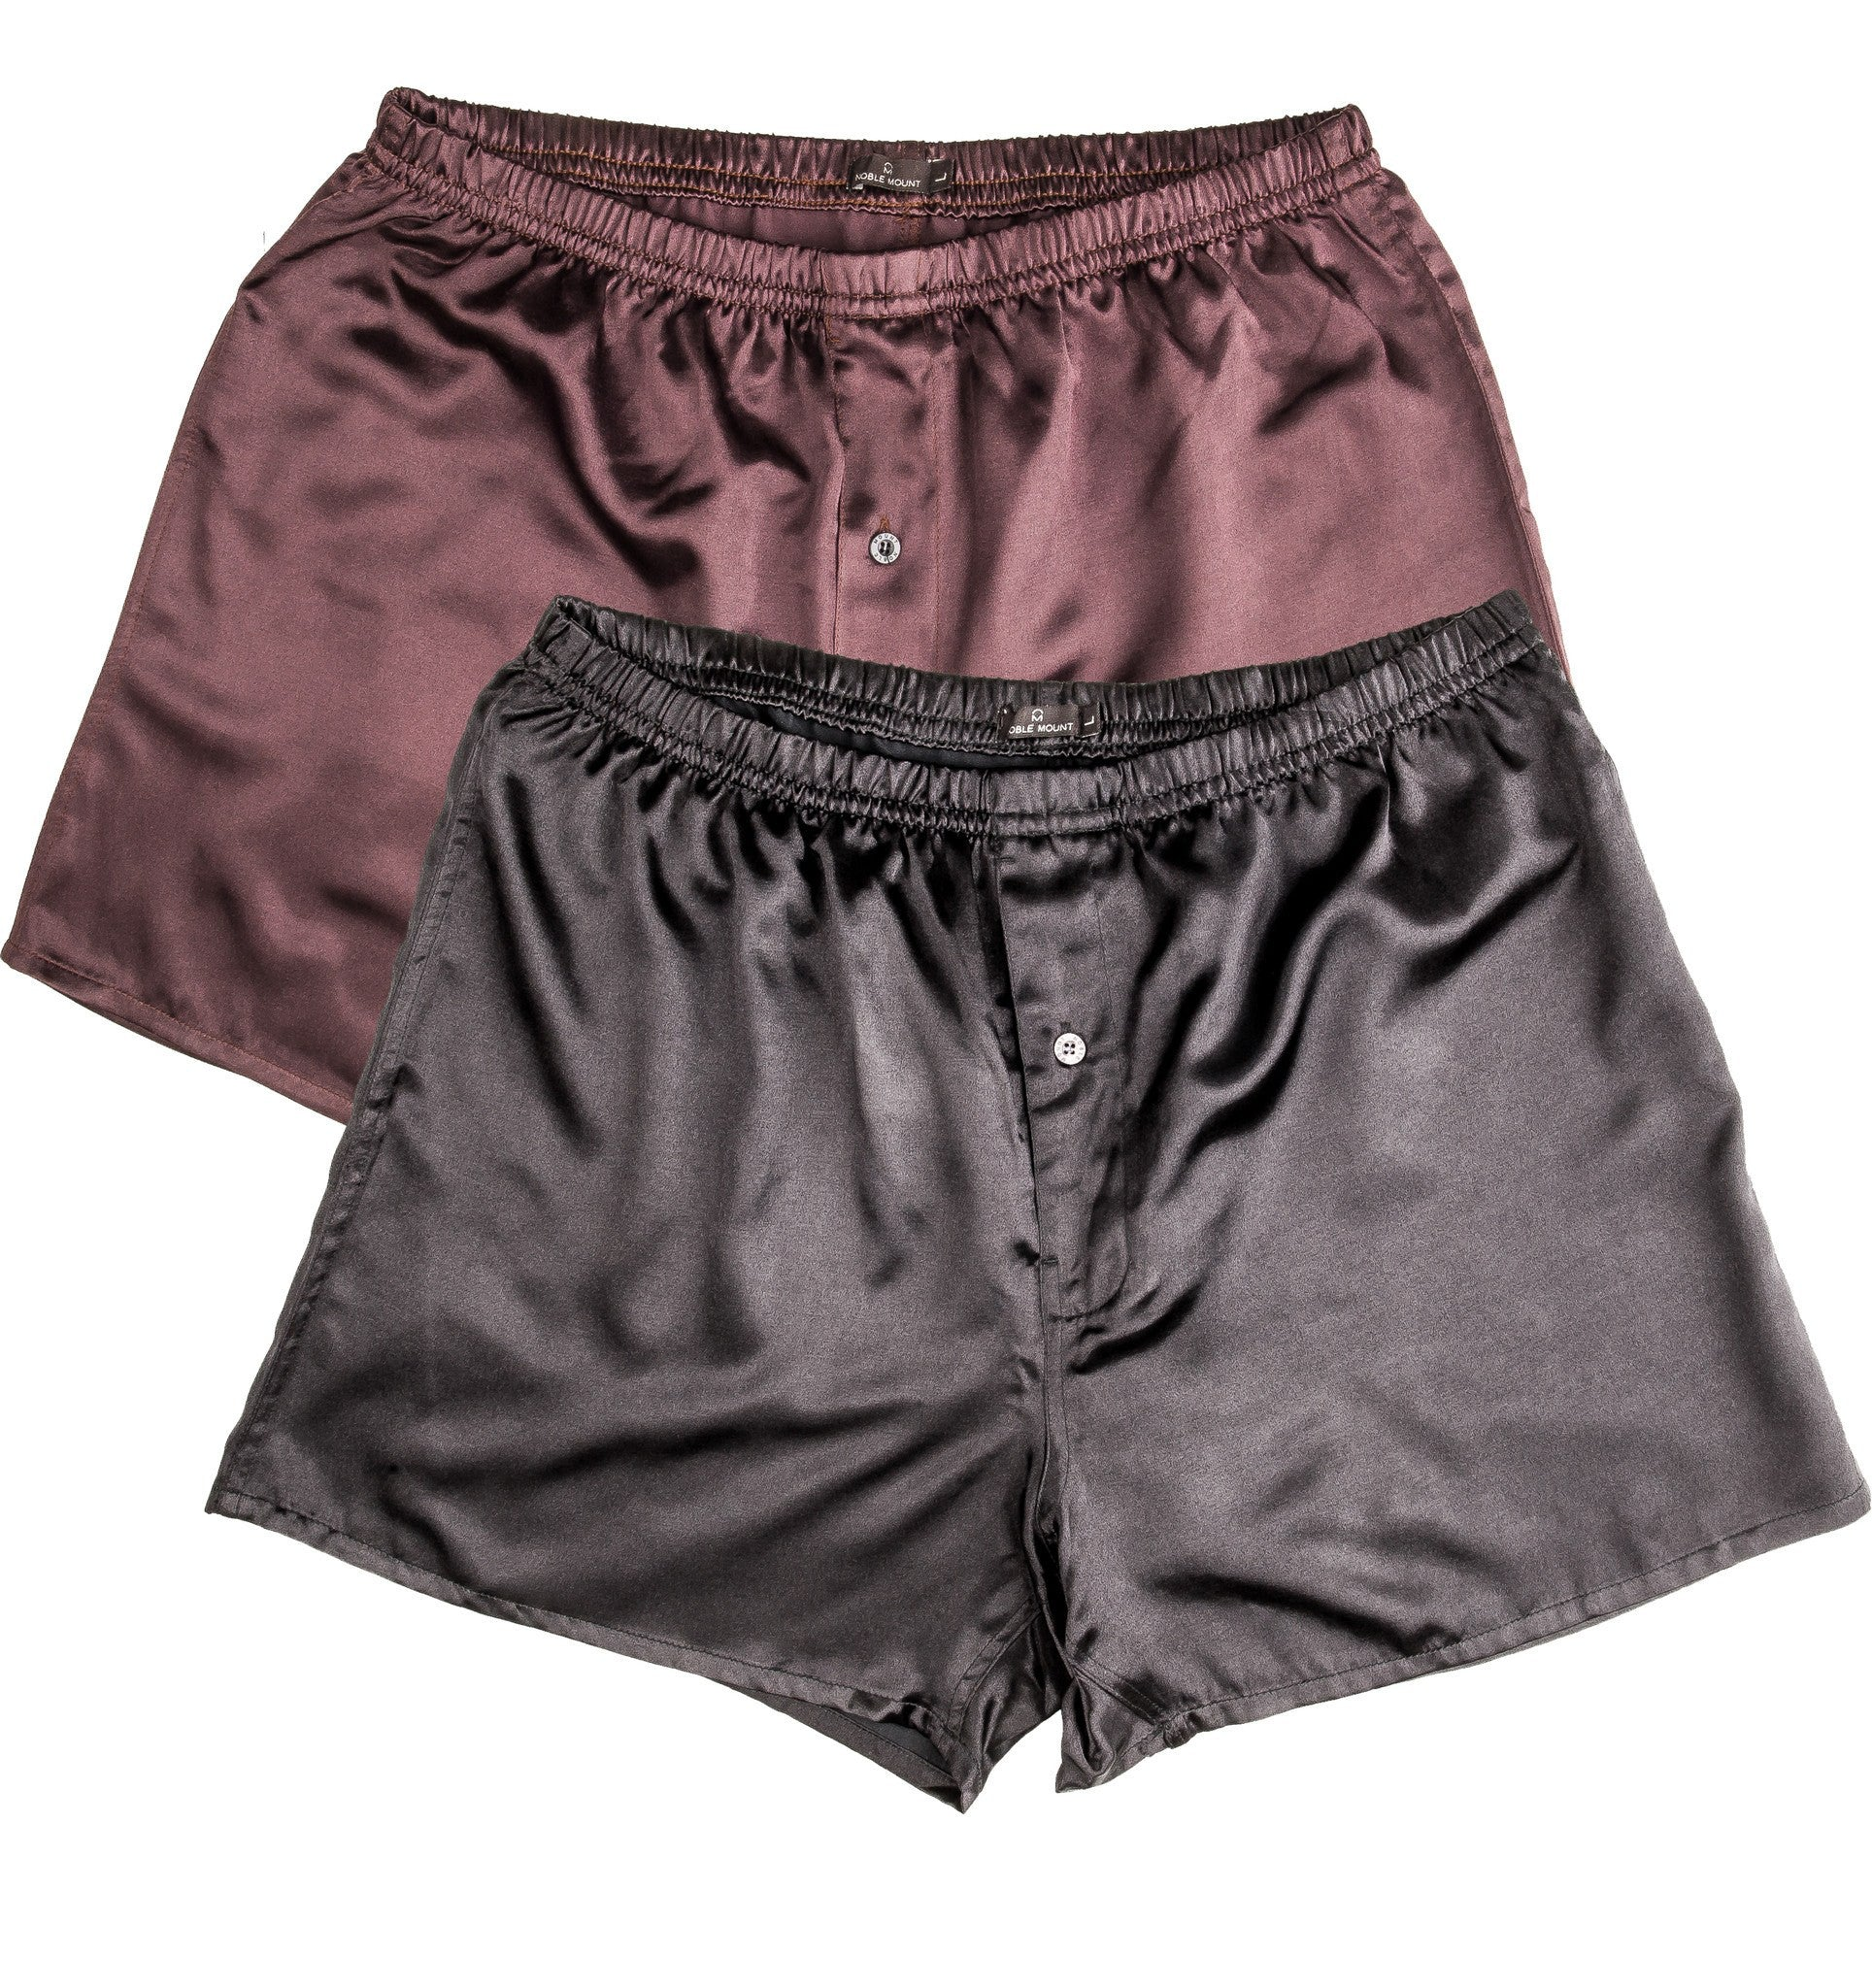 Men S Premium Satin Boxers 2 Pack Noble Mount